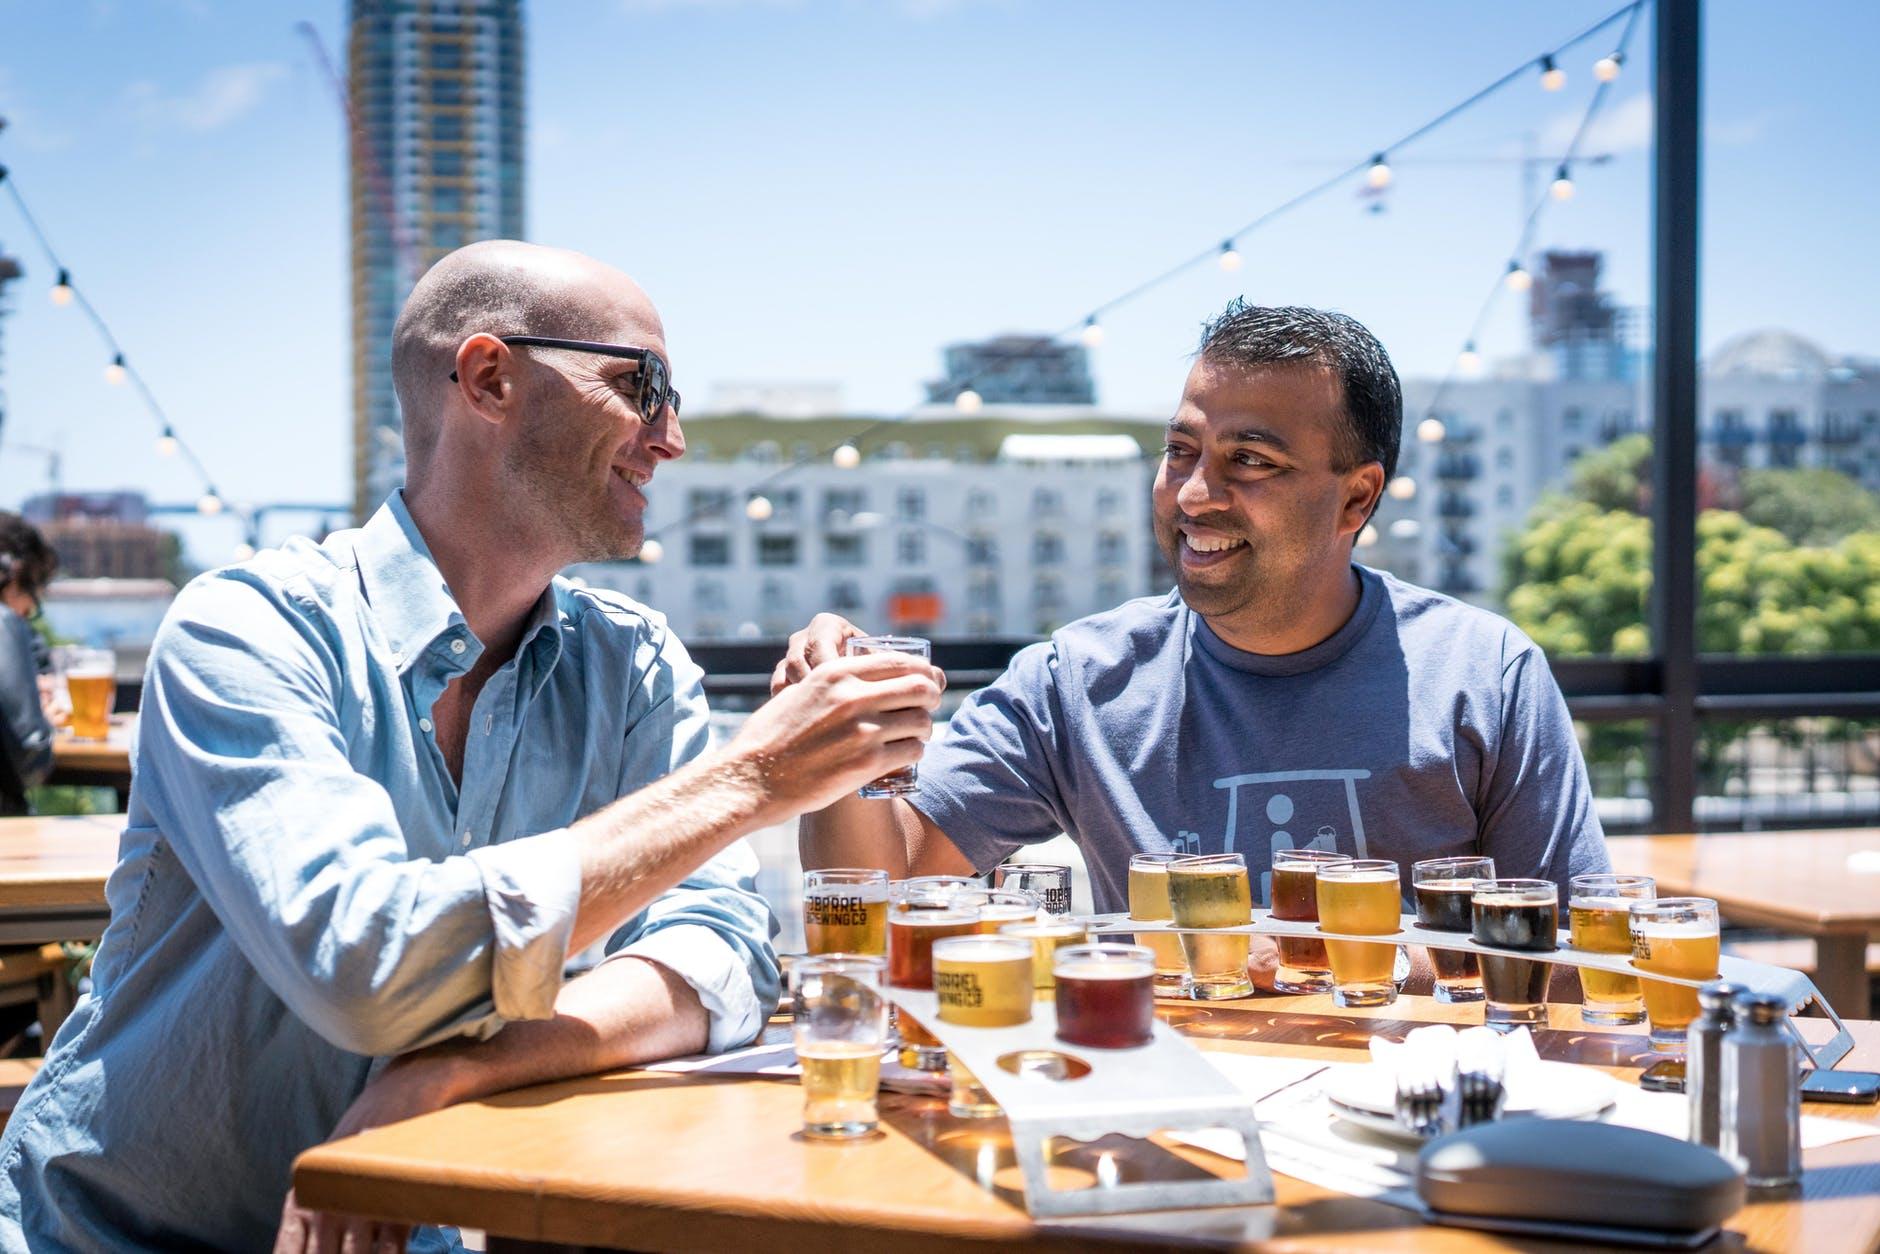 BEER 101: ALL THE THINGS YOU NEED TO KNOW ABOUT THIS ALCOHOLIC DRINK